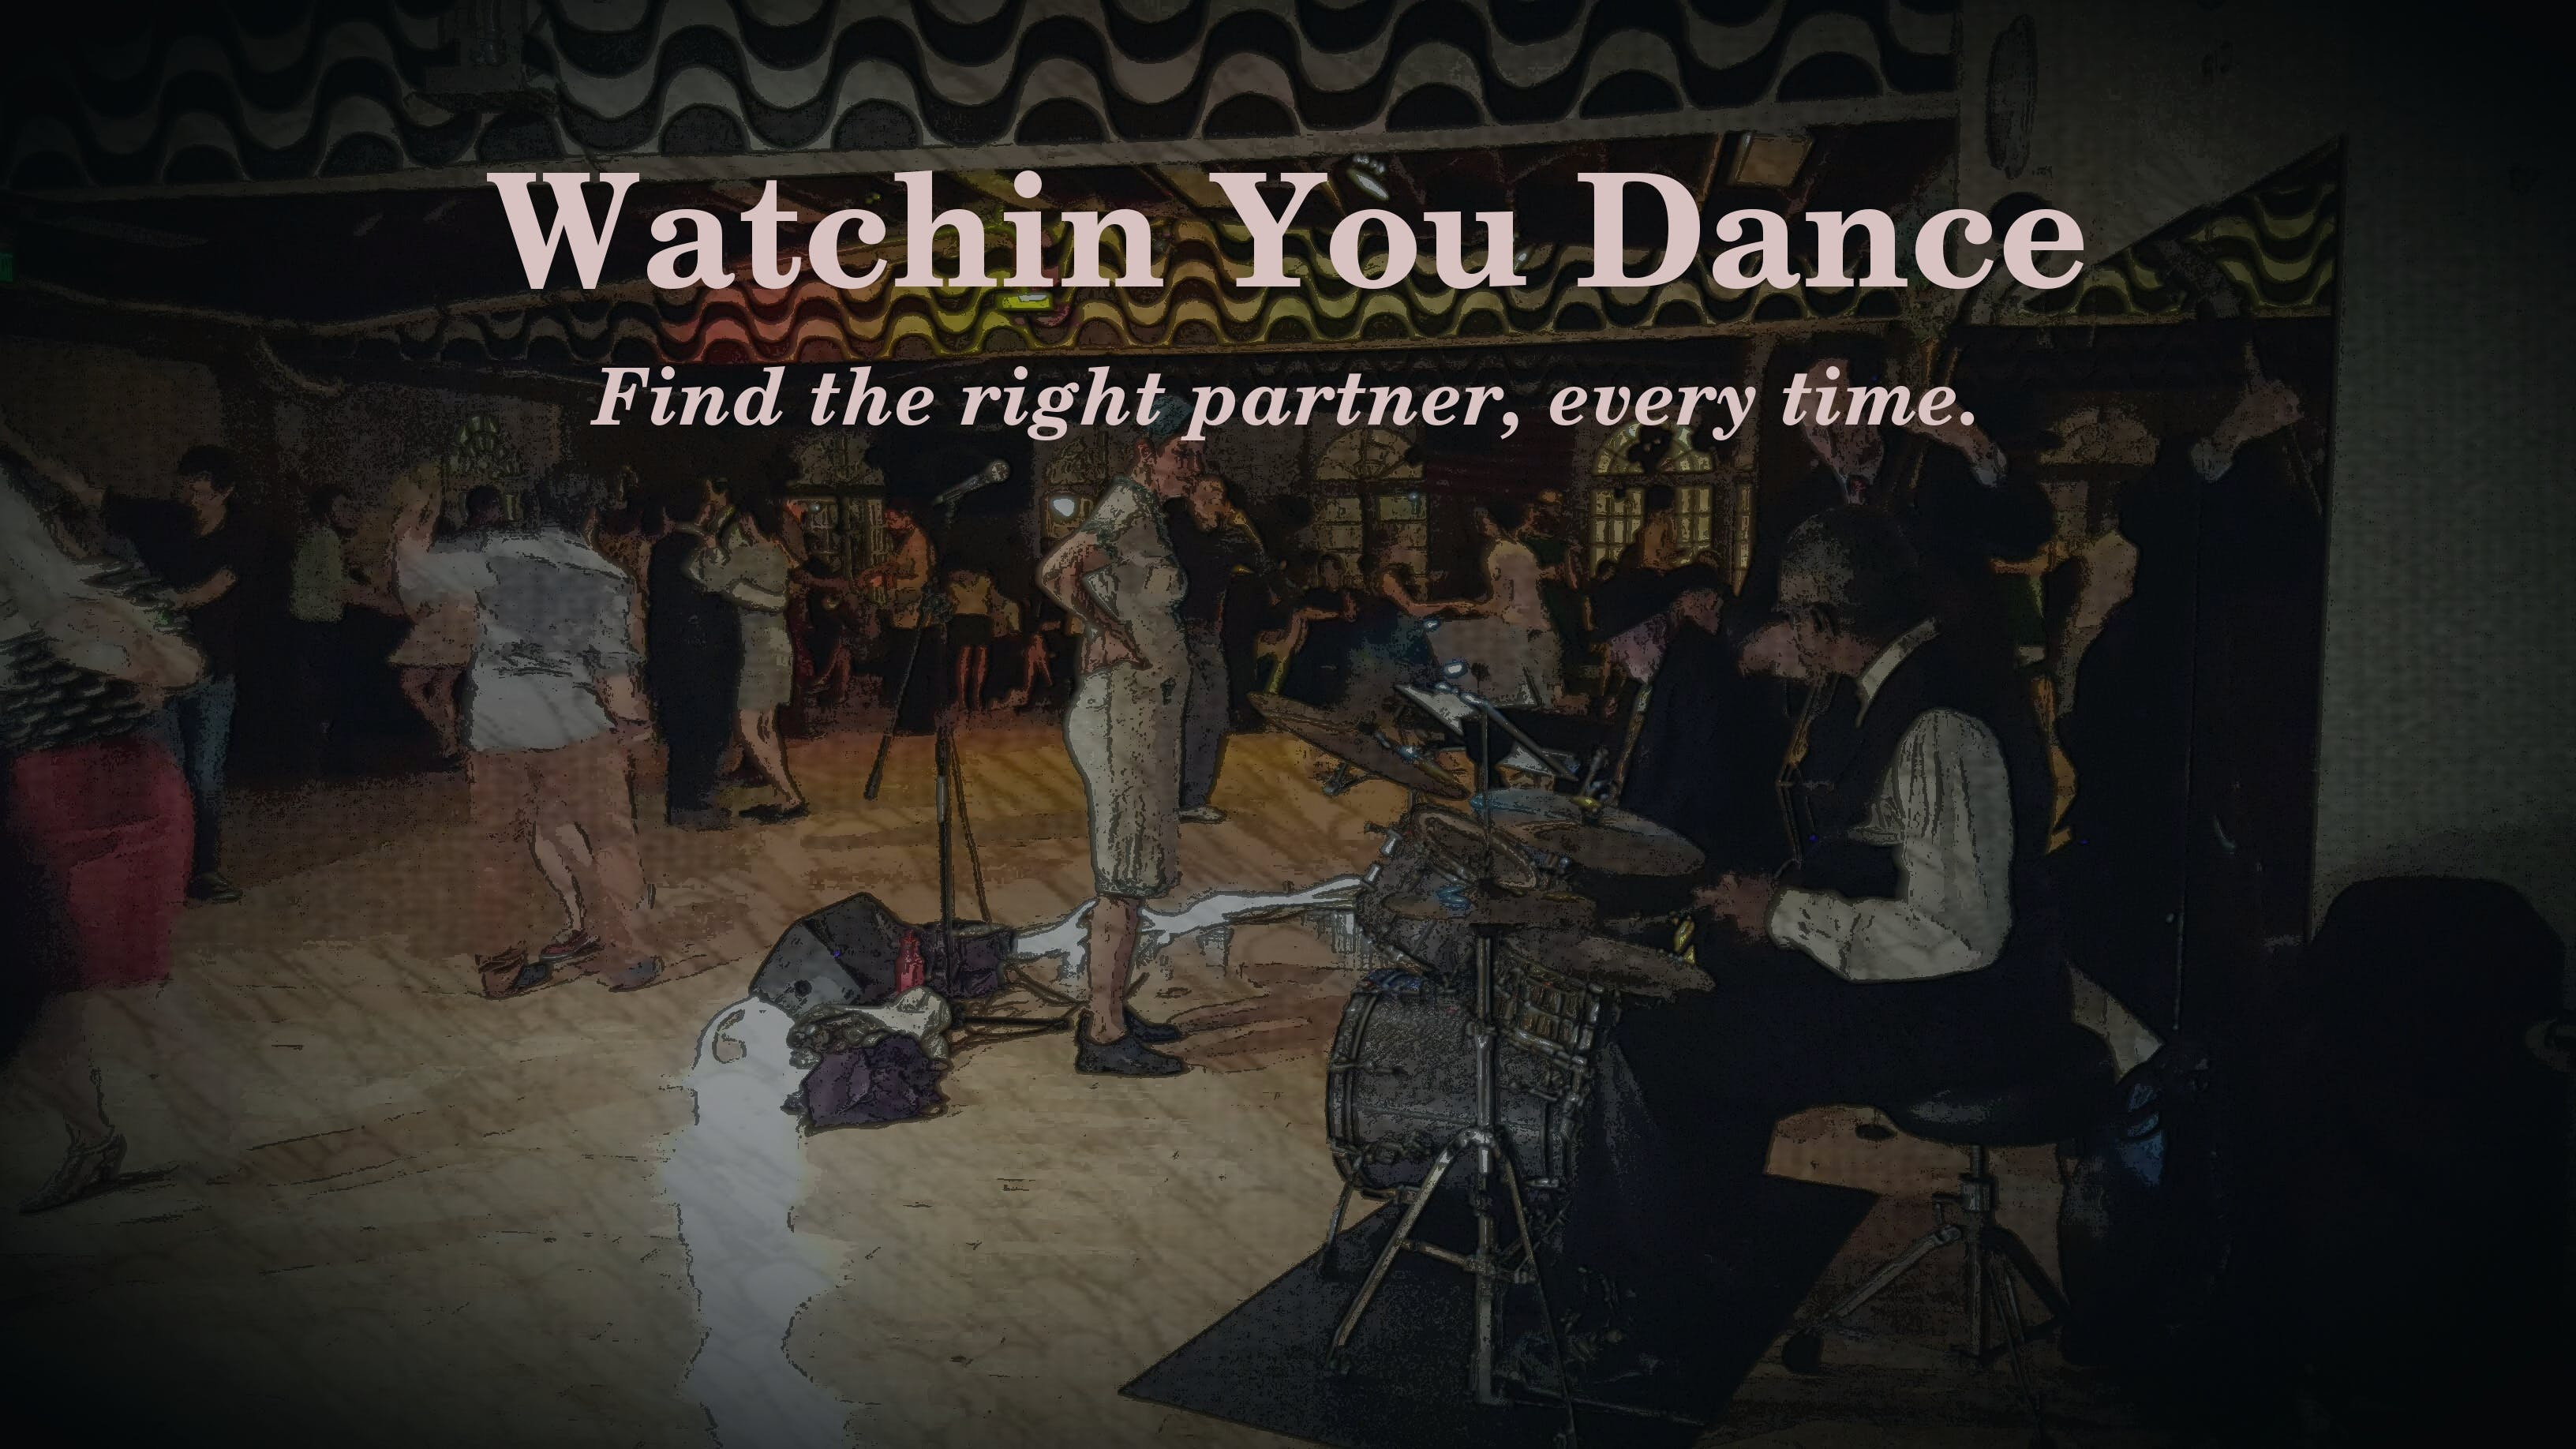 Watchin' You Dance